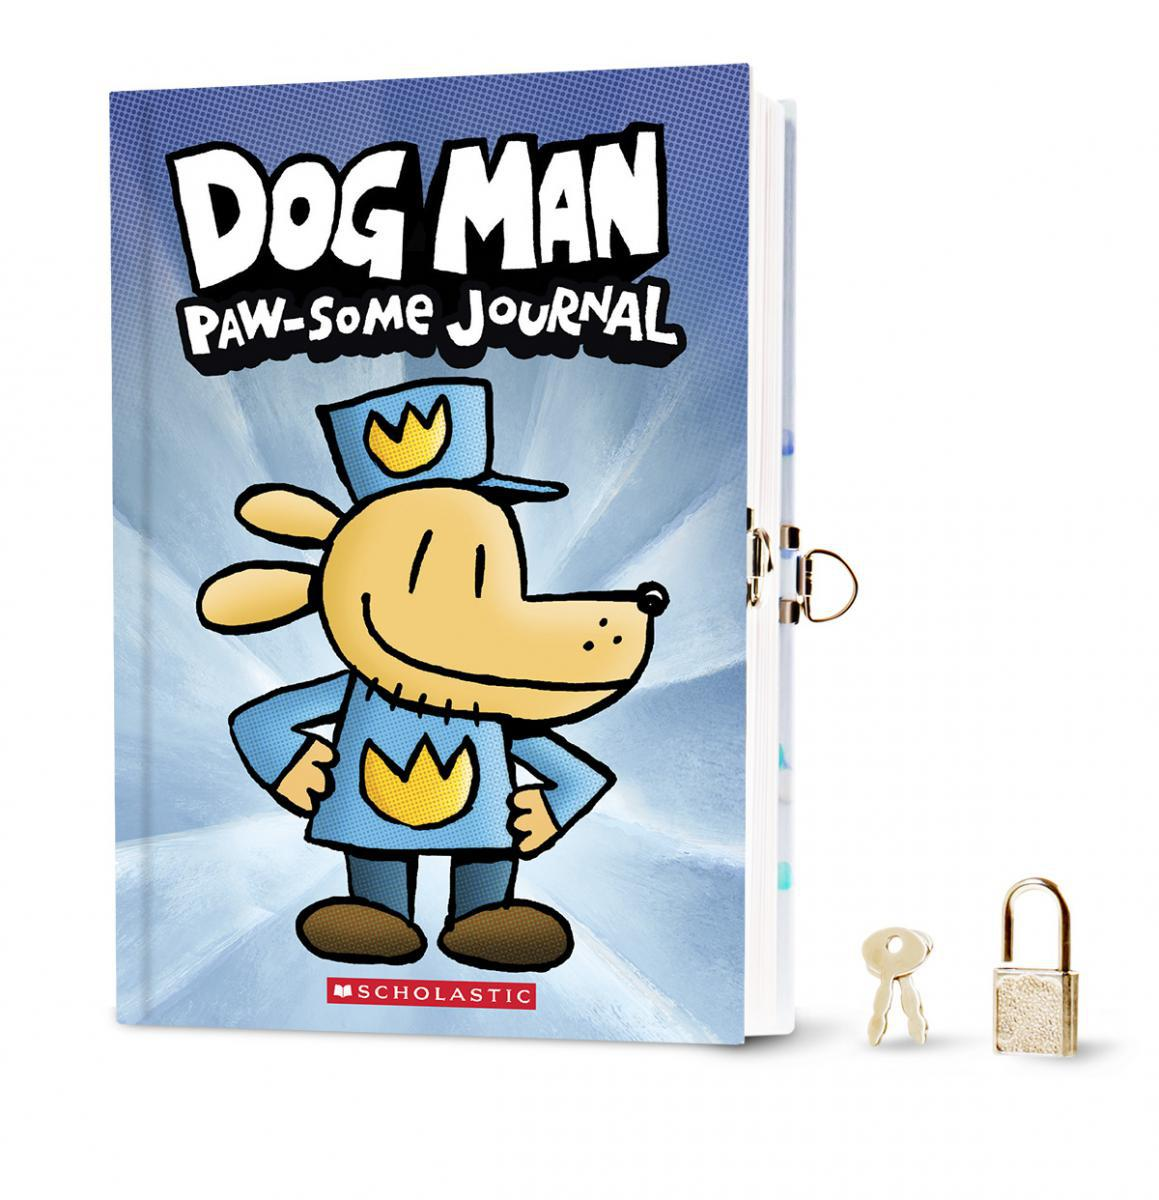 Dog Man: Paw-some Journal